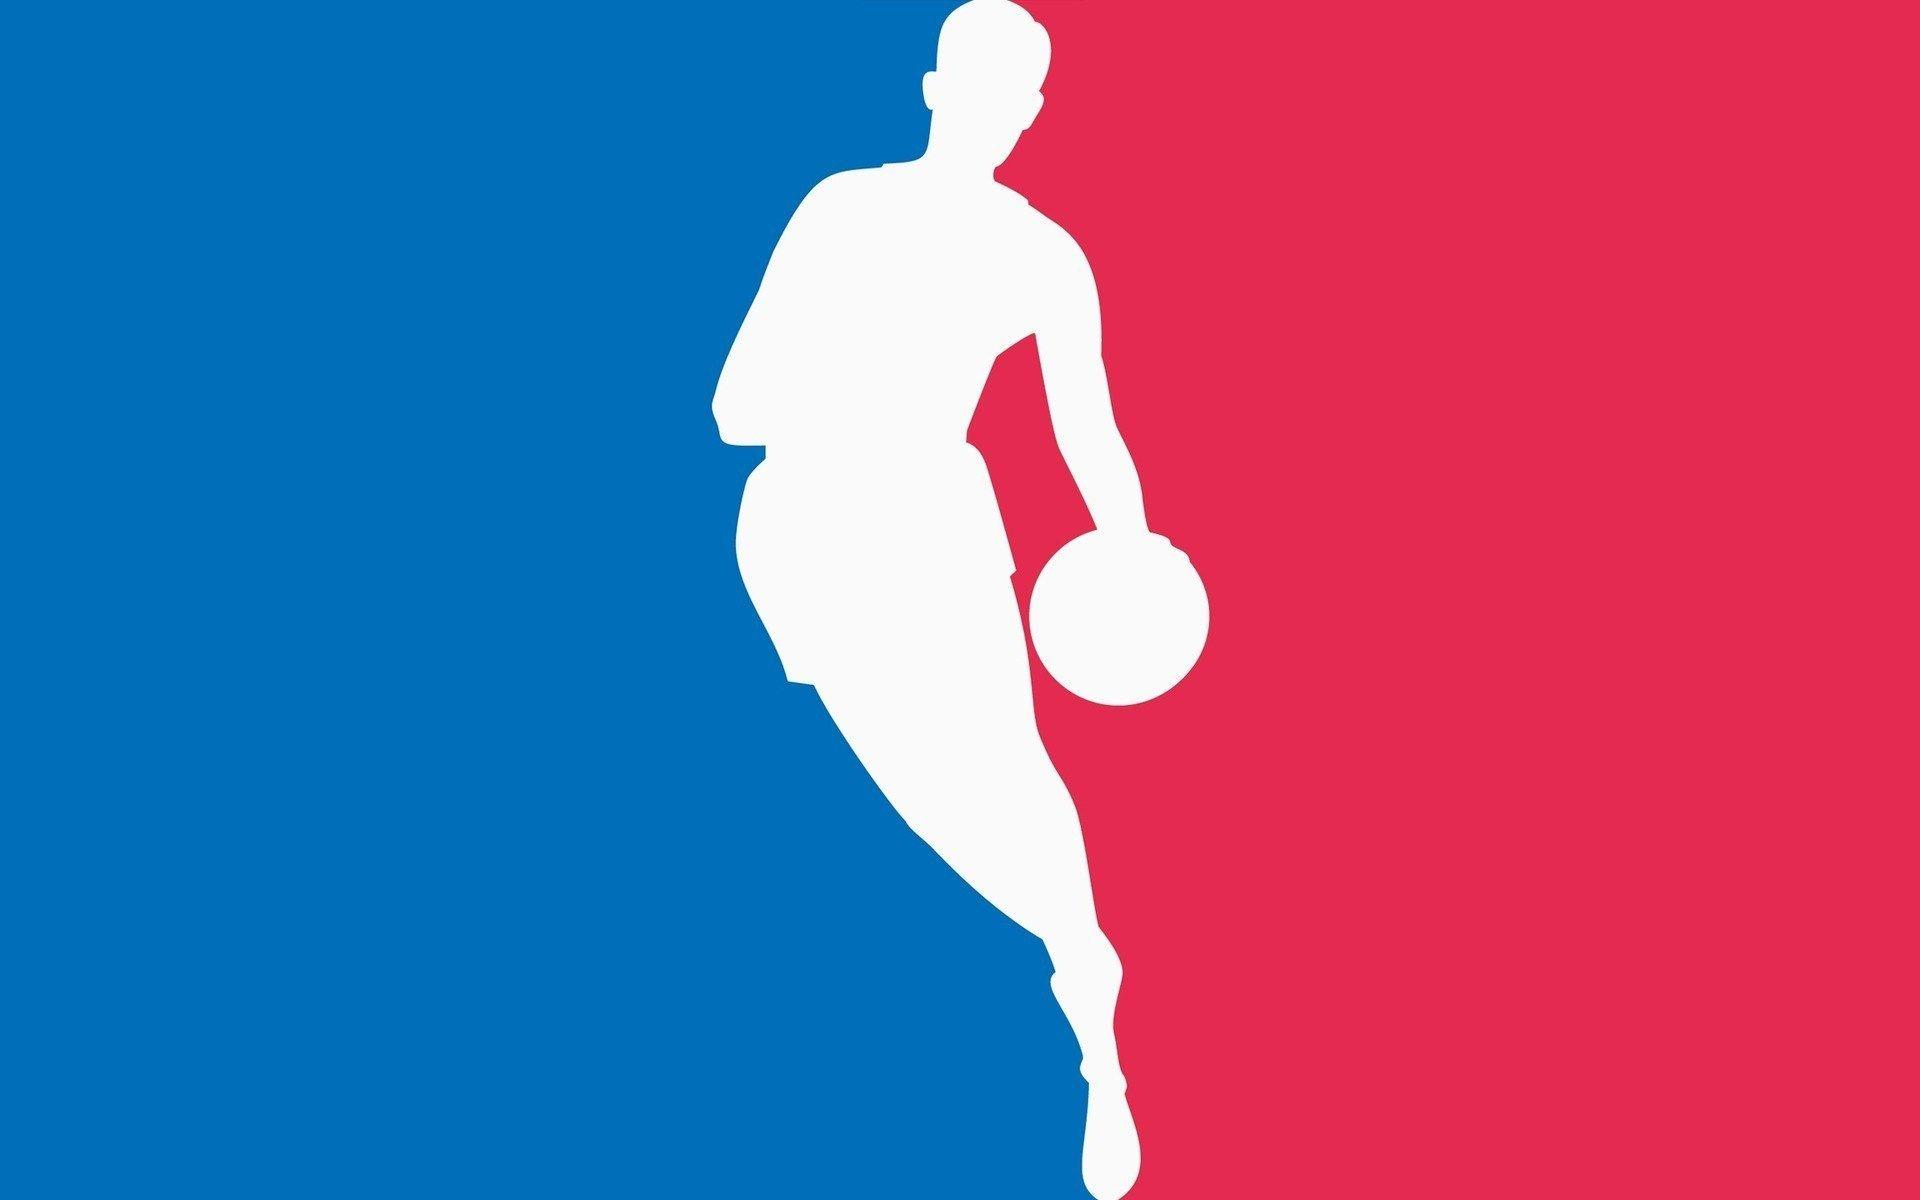 NBA Logo Basketball Sport wallpaper | 1920x1200 | #9489